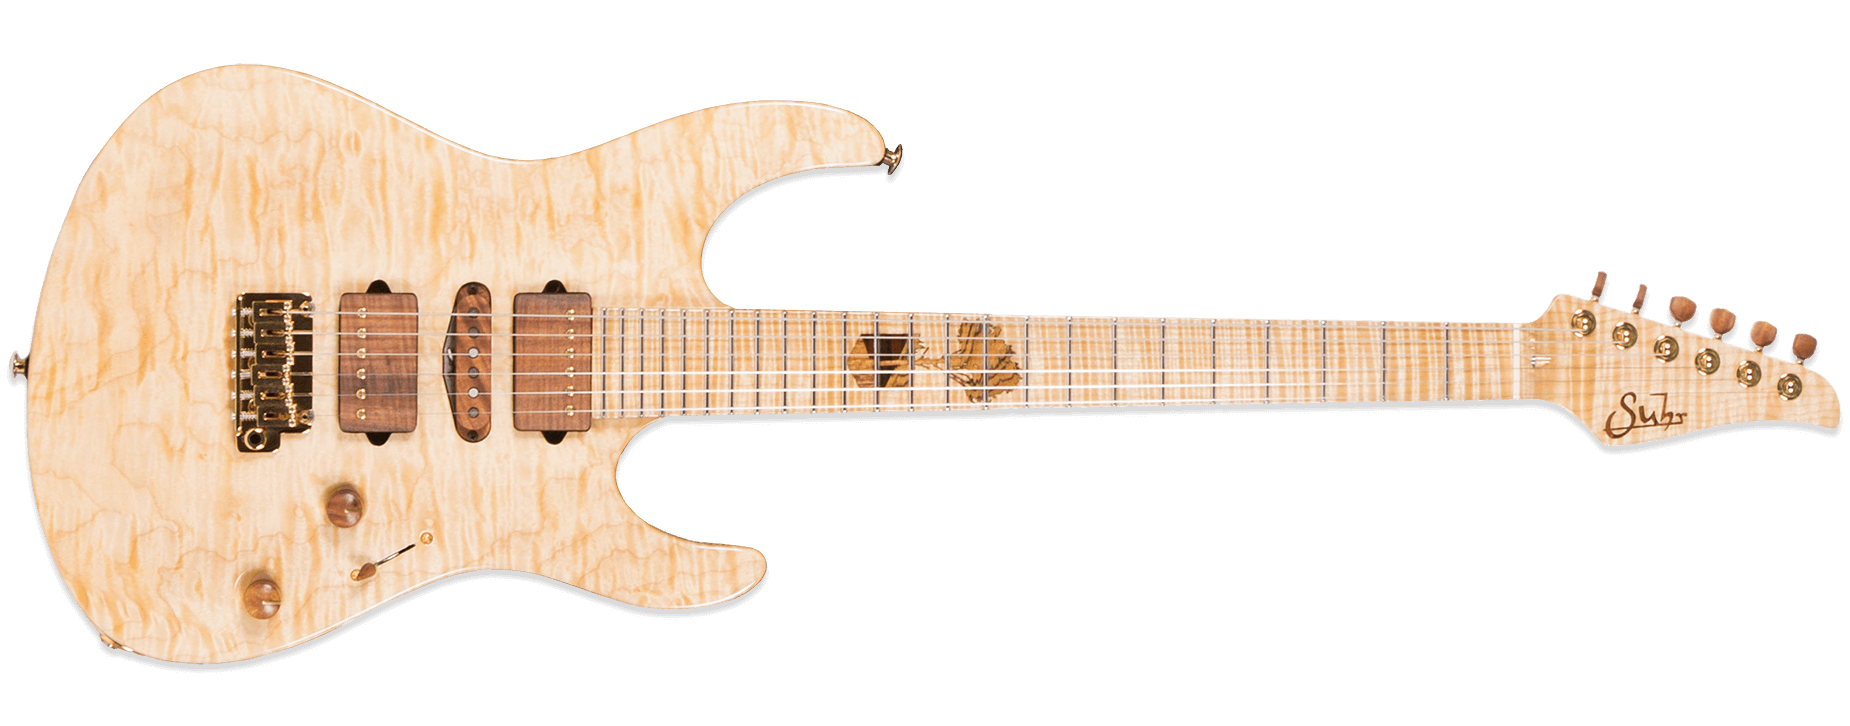 Suhr Trilogy Collection 2016 No.1